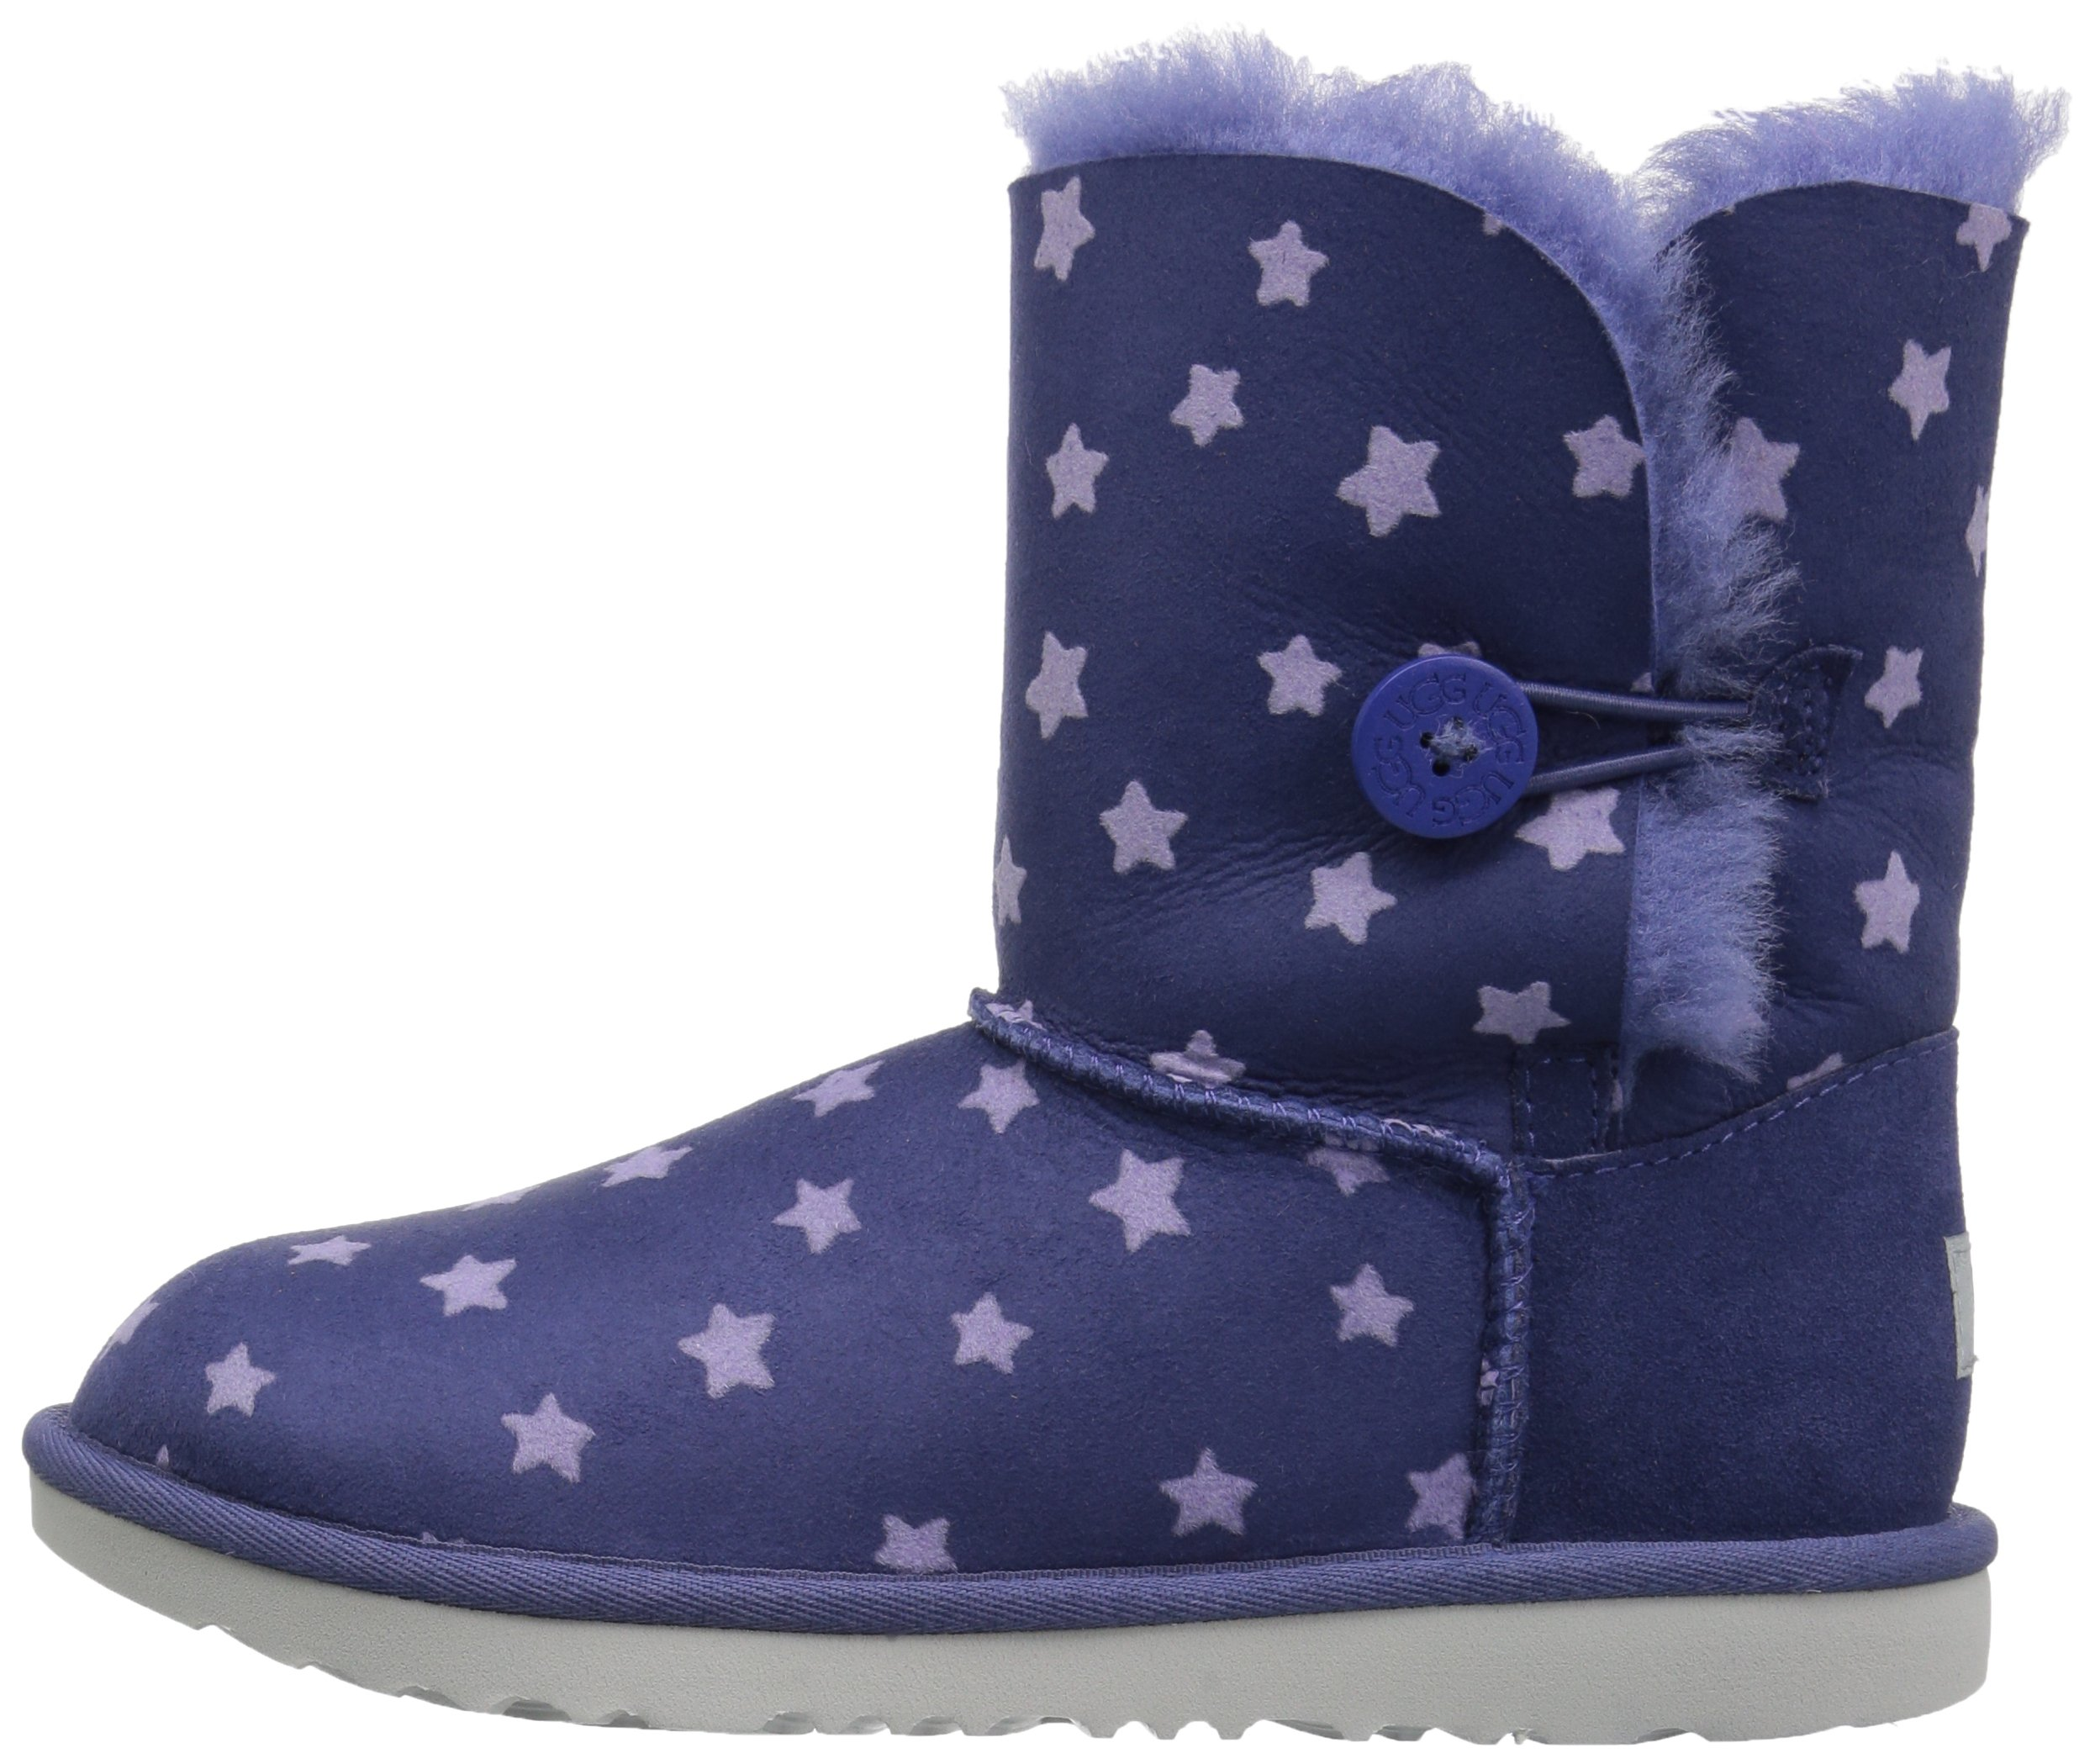 UGG Girls K Bailey Button II Stars Pull-On Boot, Nocturn, 1 M US Little Kid by UGG (Image #5)